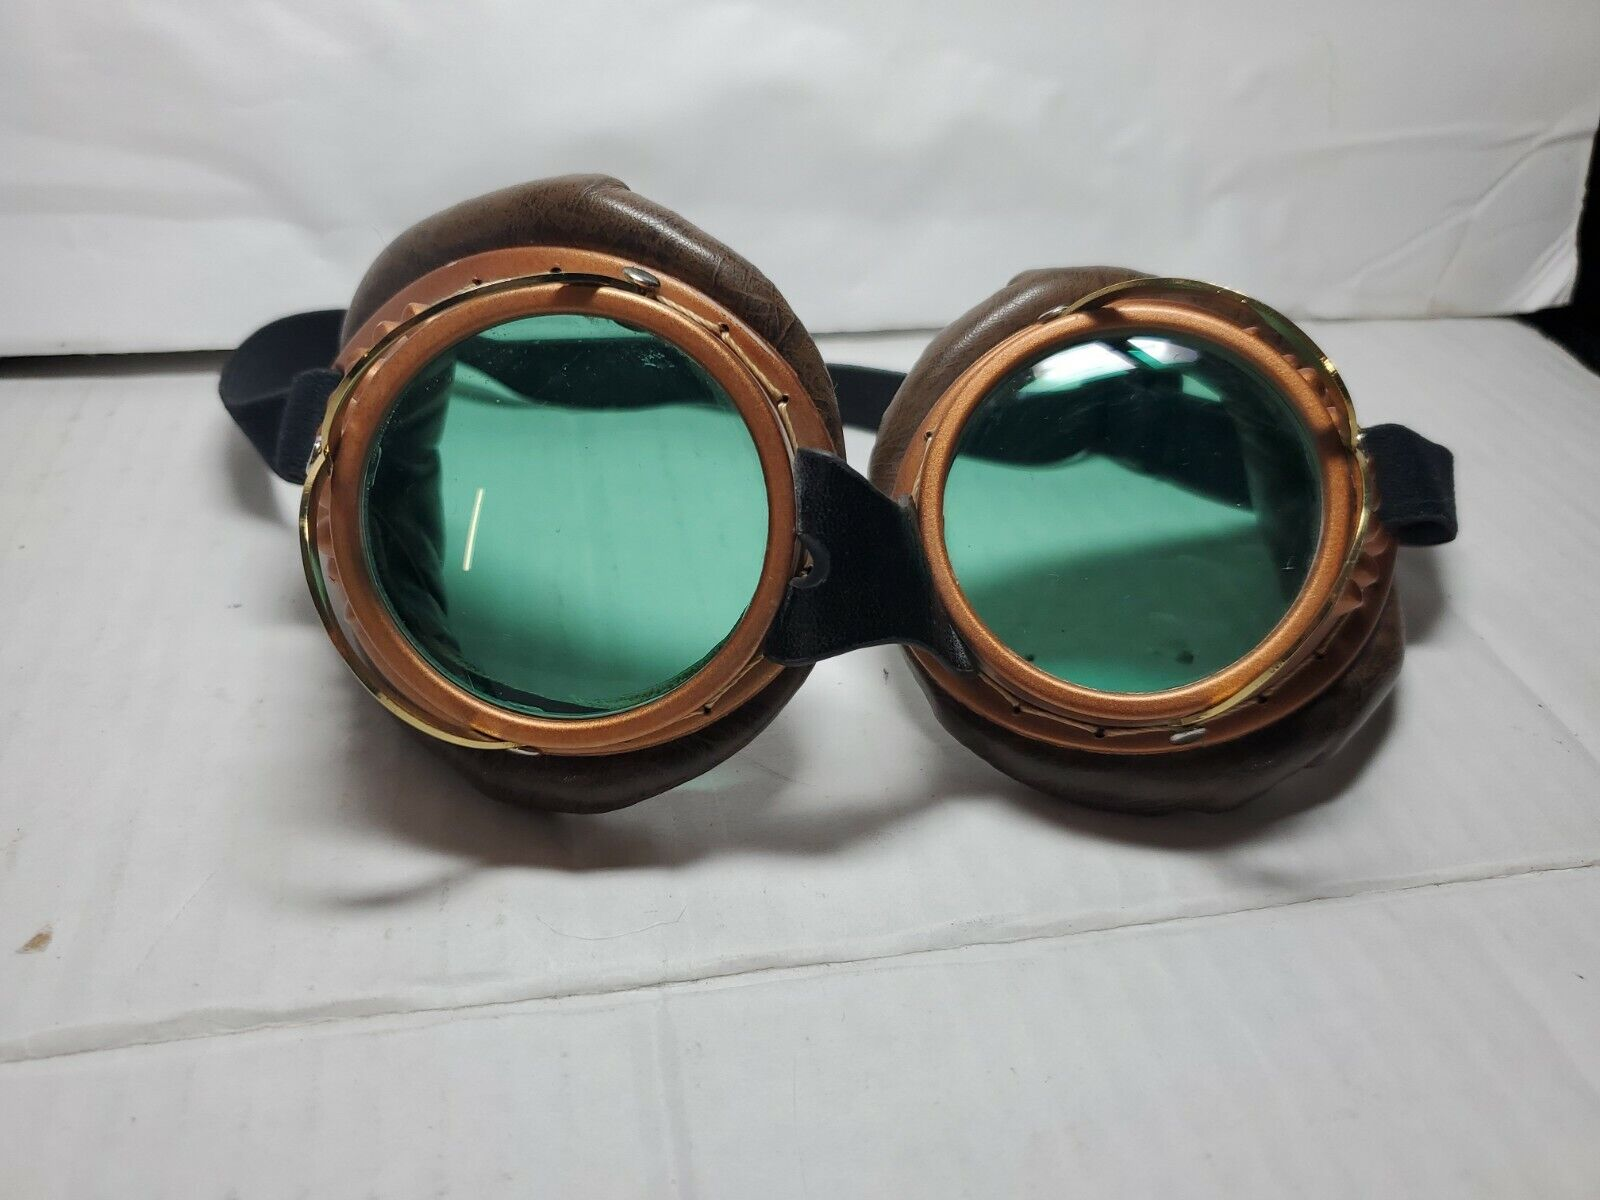 Vintage welding glasses old steampunk goggles cyber goggles cosplay rare ussr